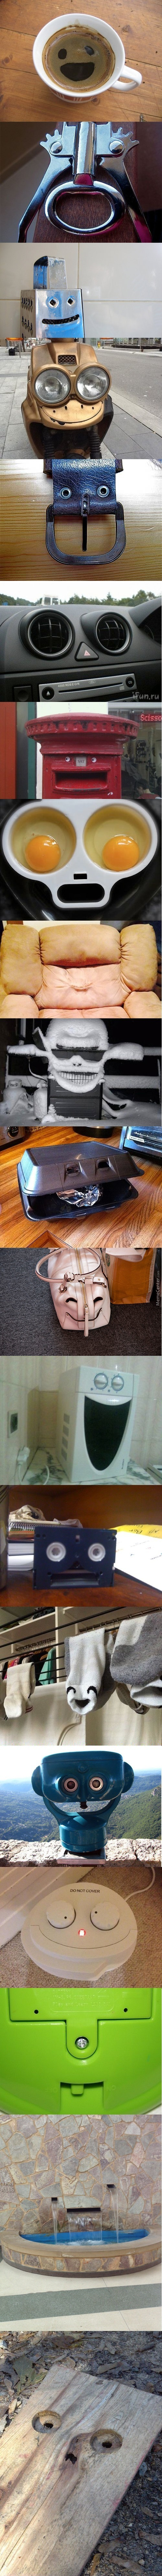 When An Object Smiles Better Than You.